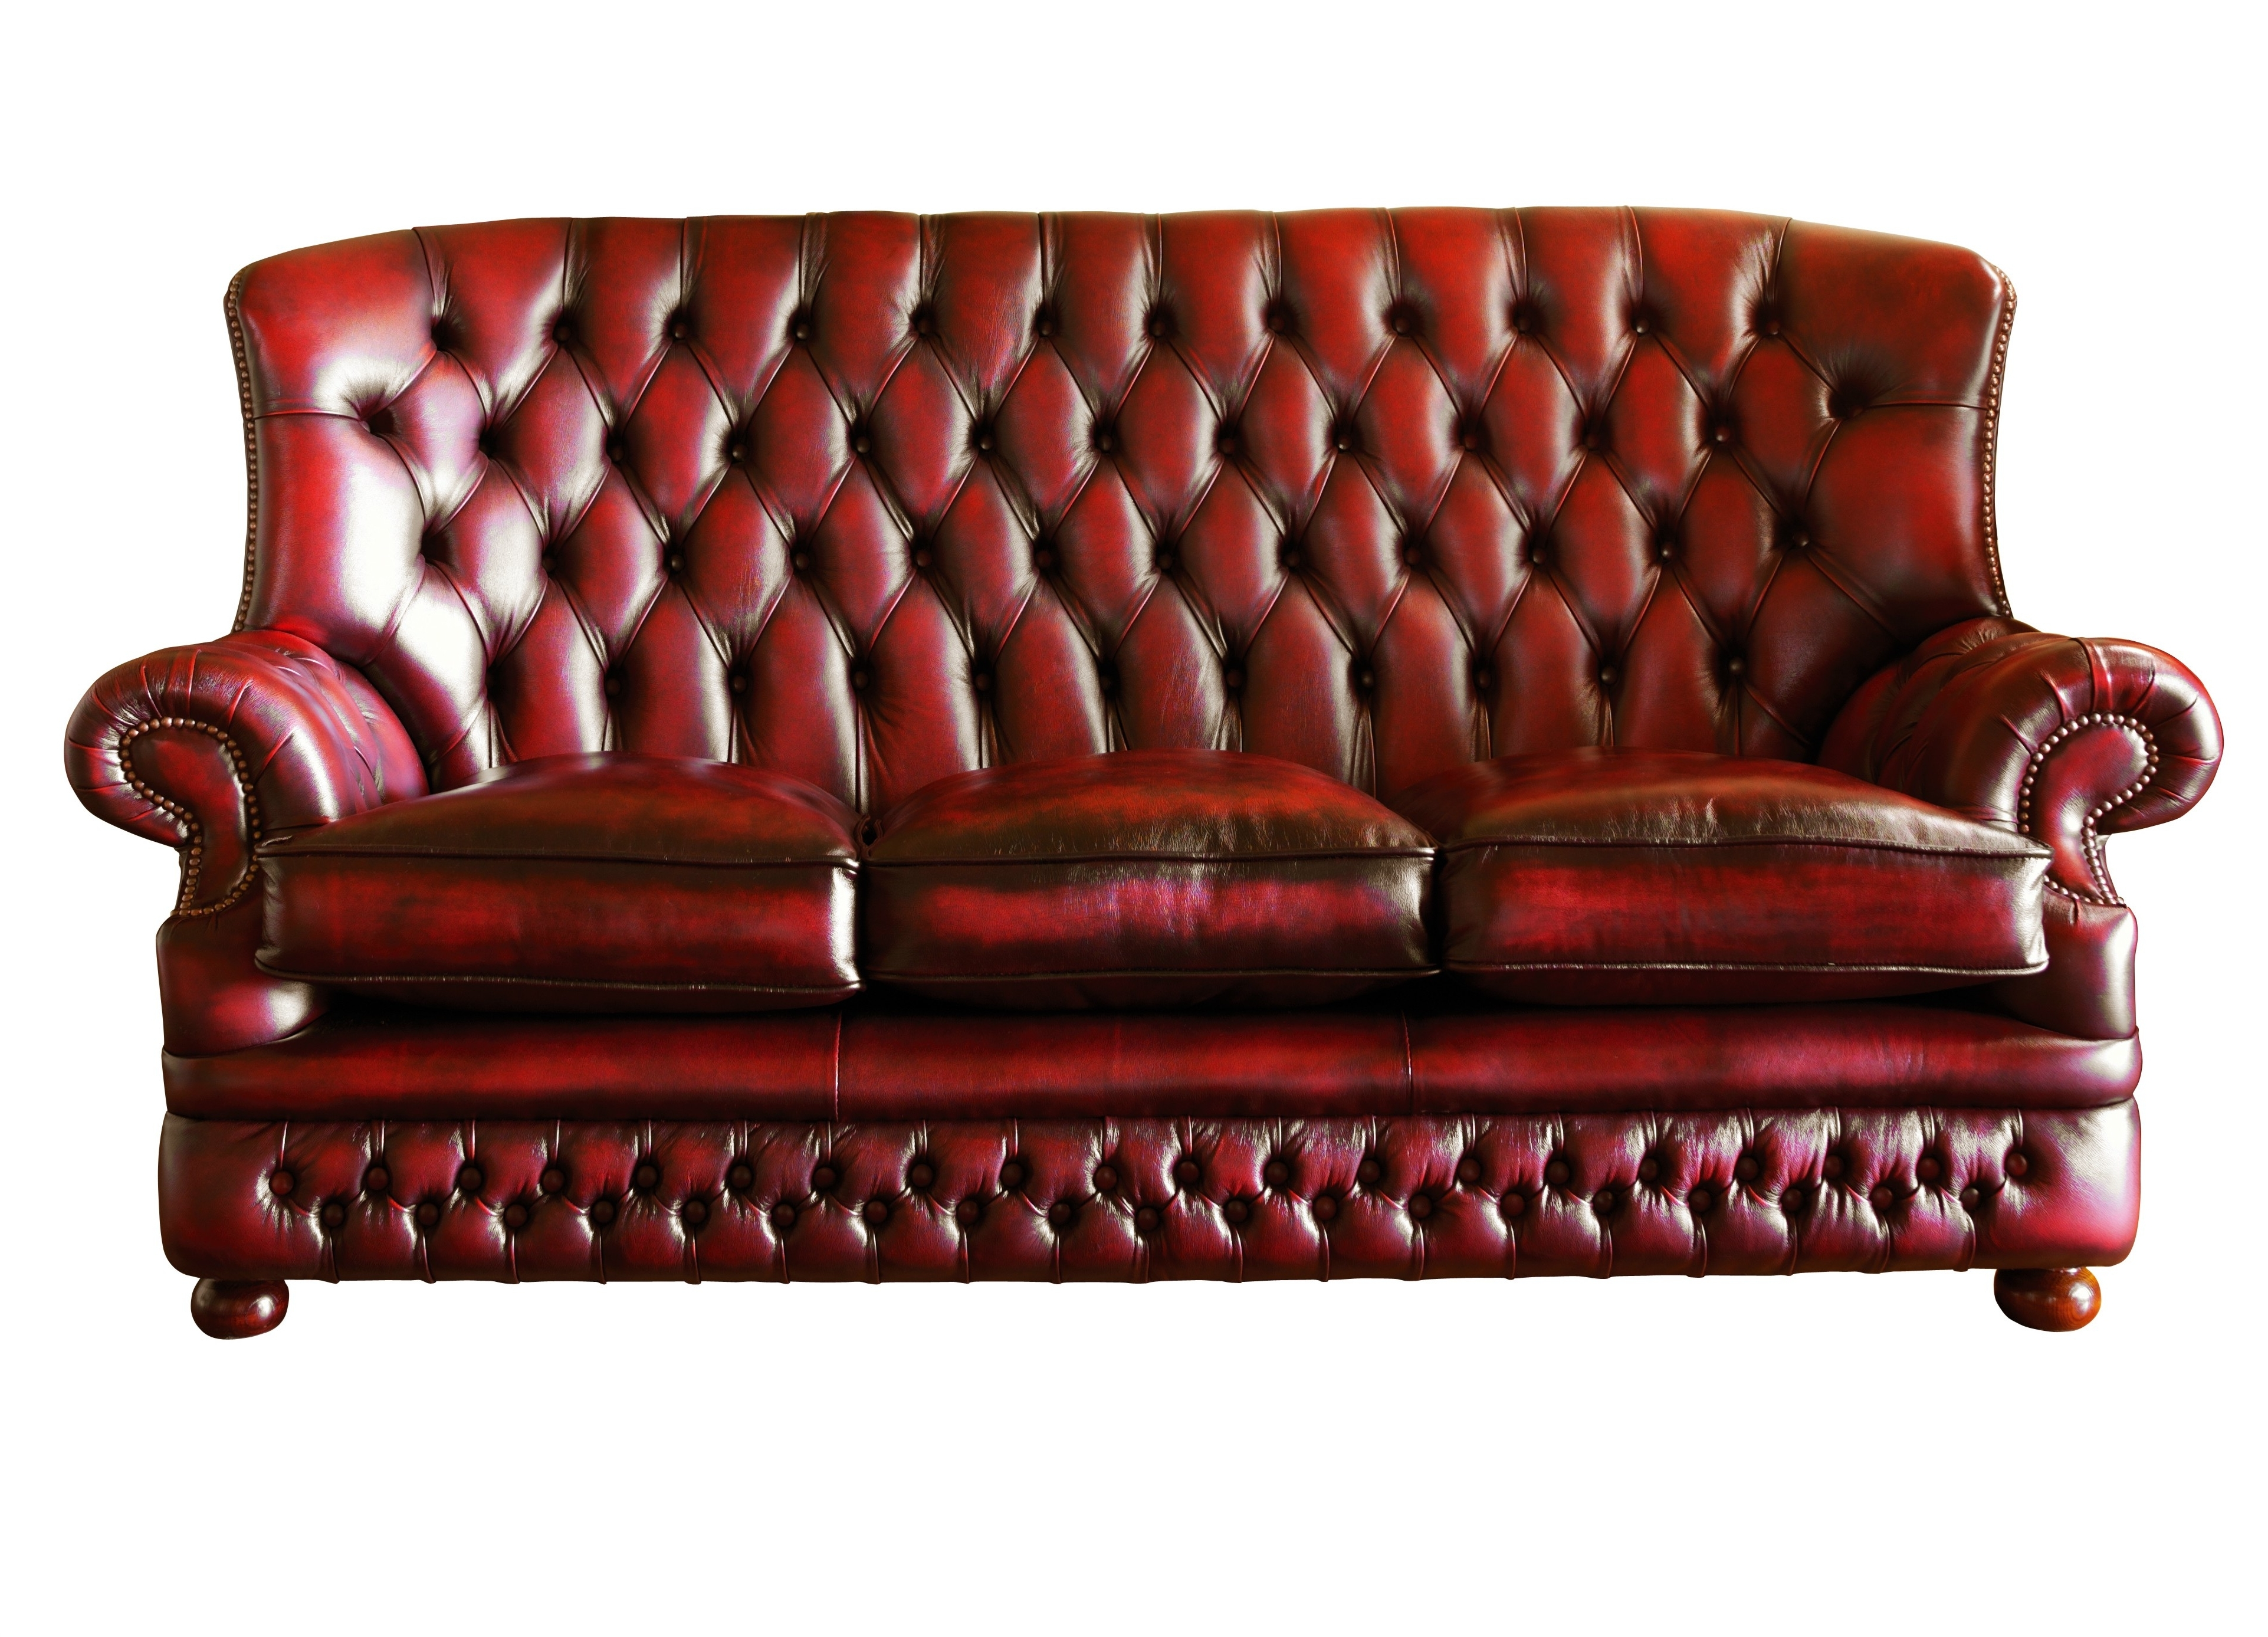 Red Leather Sectional Sofa With High Back Plus Arm Rest And Three Regarding Well Liked Sectional Sofas With High Backs (View 18 of 20)